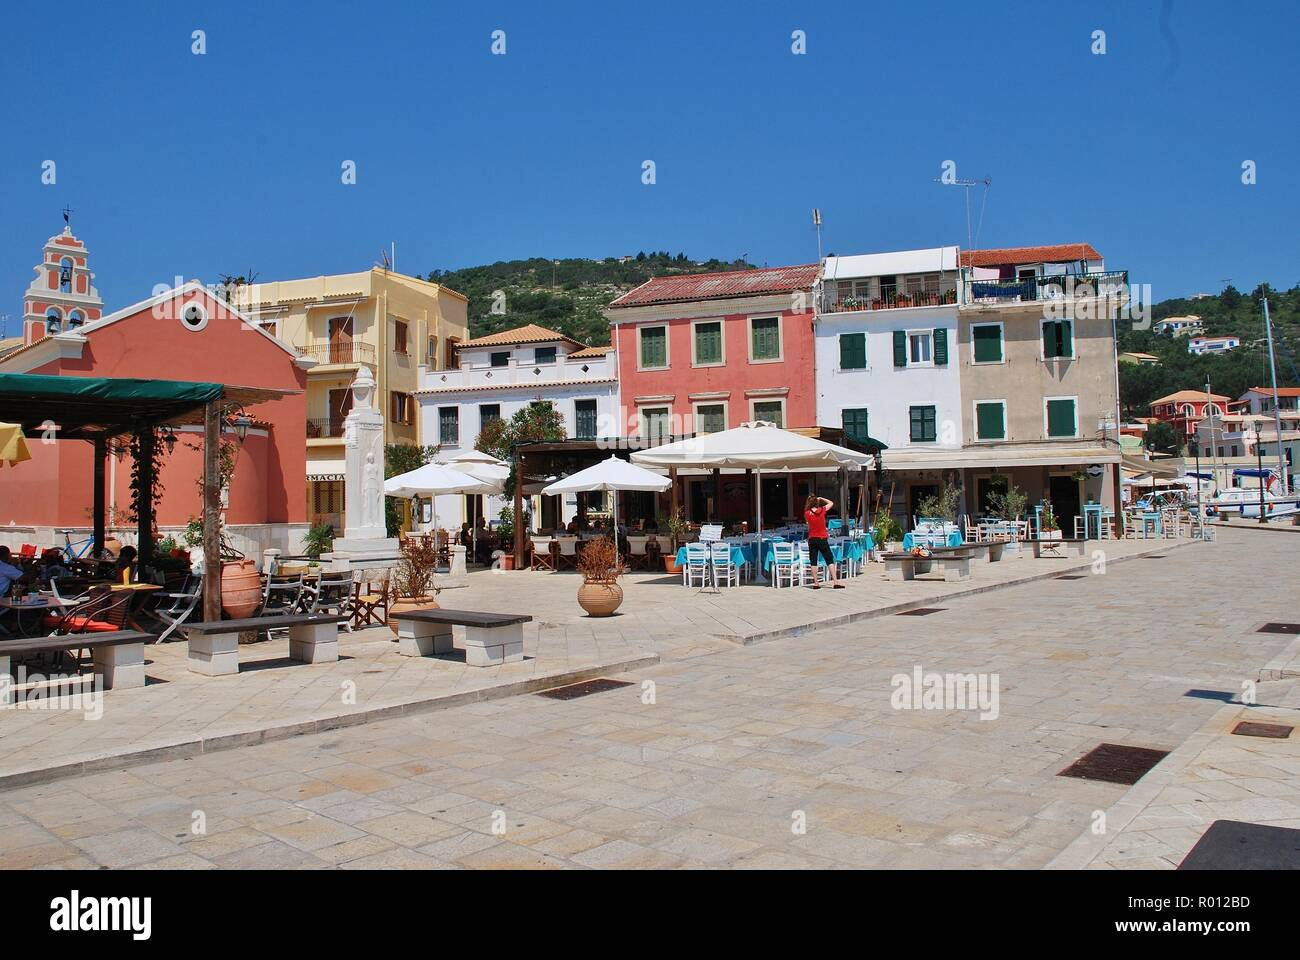 Harbour front tavernas at Gaios on the Greek island of Paxos on June 12, 2014. Gaios is the Capital of the 13km long island. - Stock Image